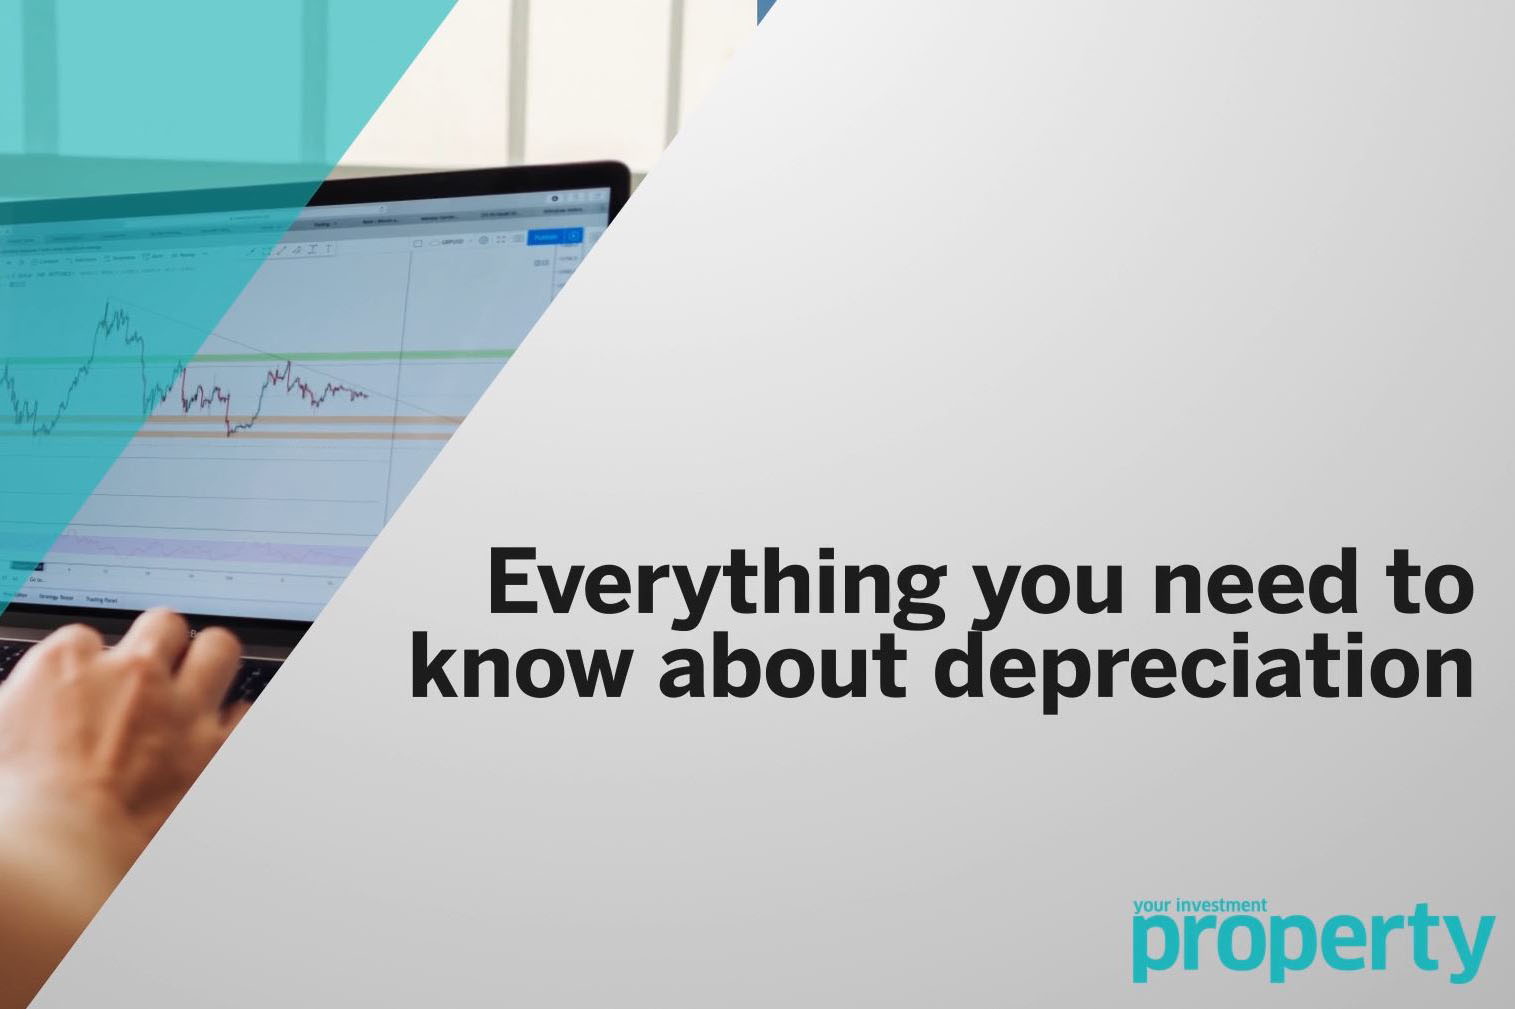 New to property investing? Here's what you need to know about depreciation